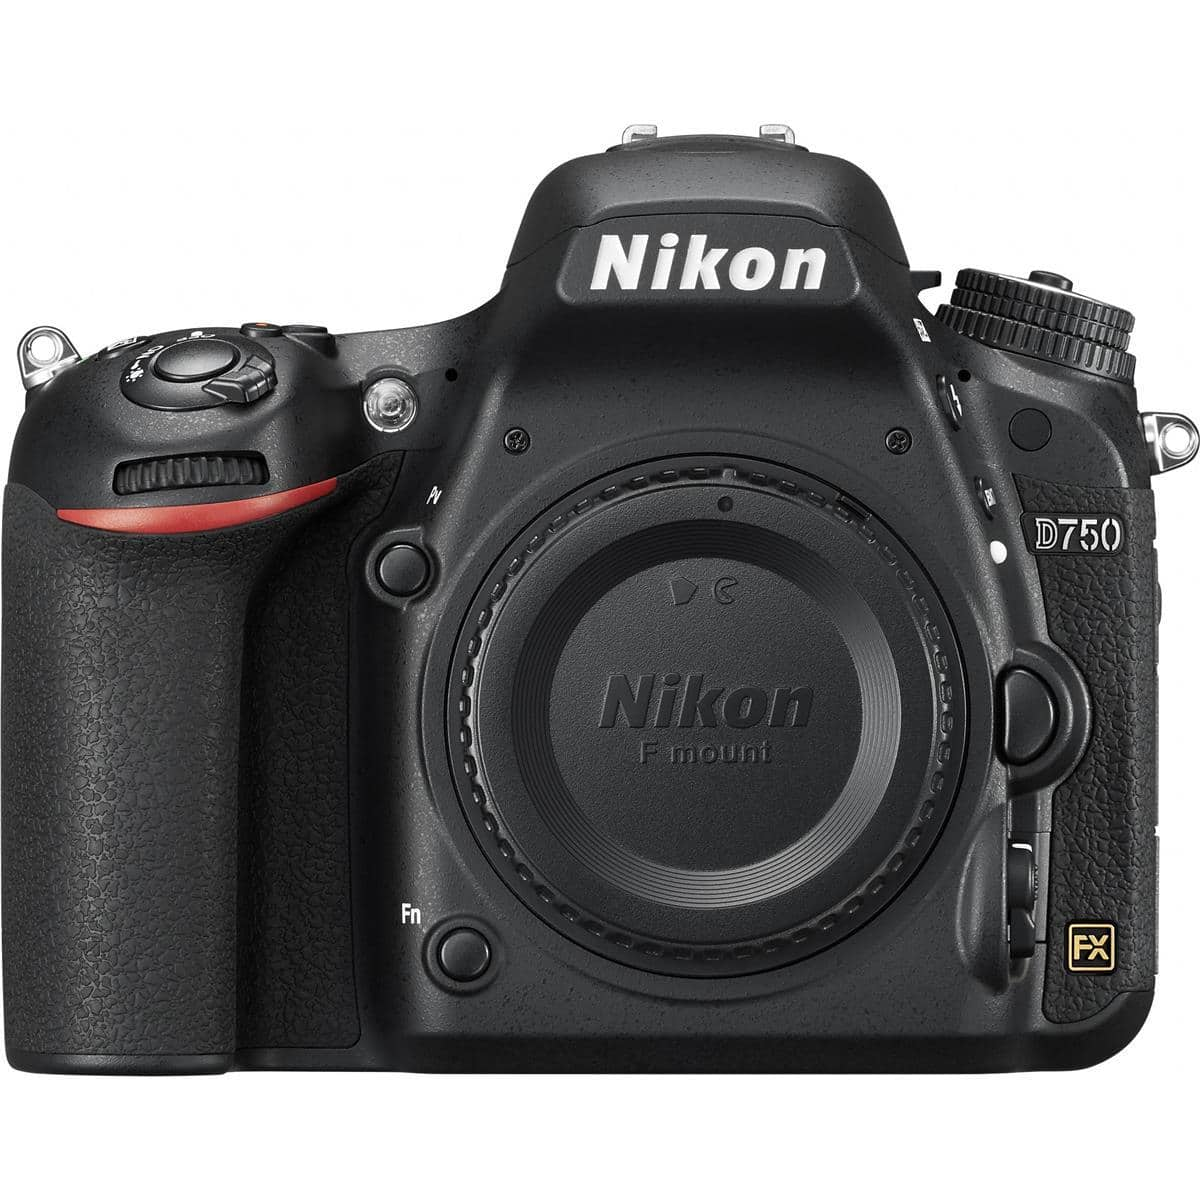 Refurbished Nikon D750 (Body Only) - $1,499 + Free Shipping!